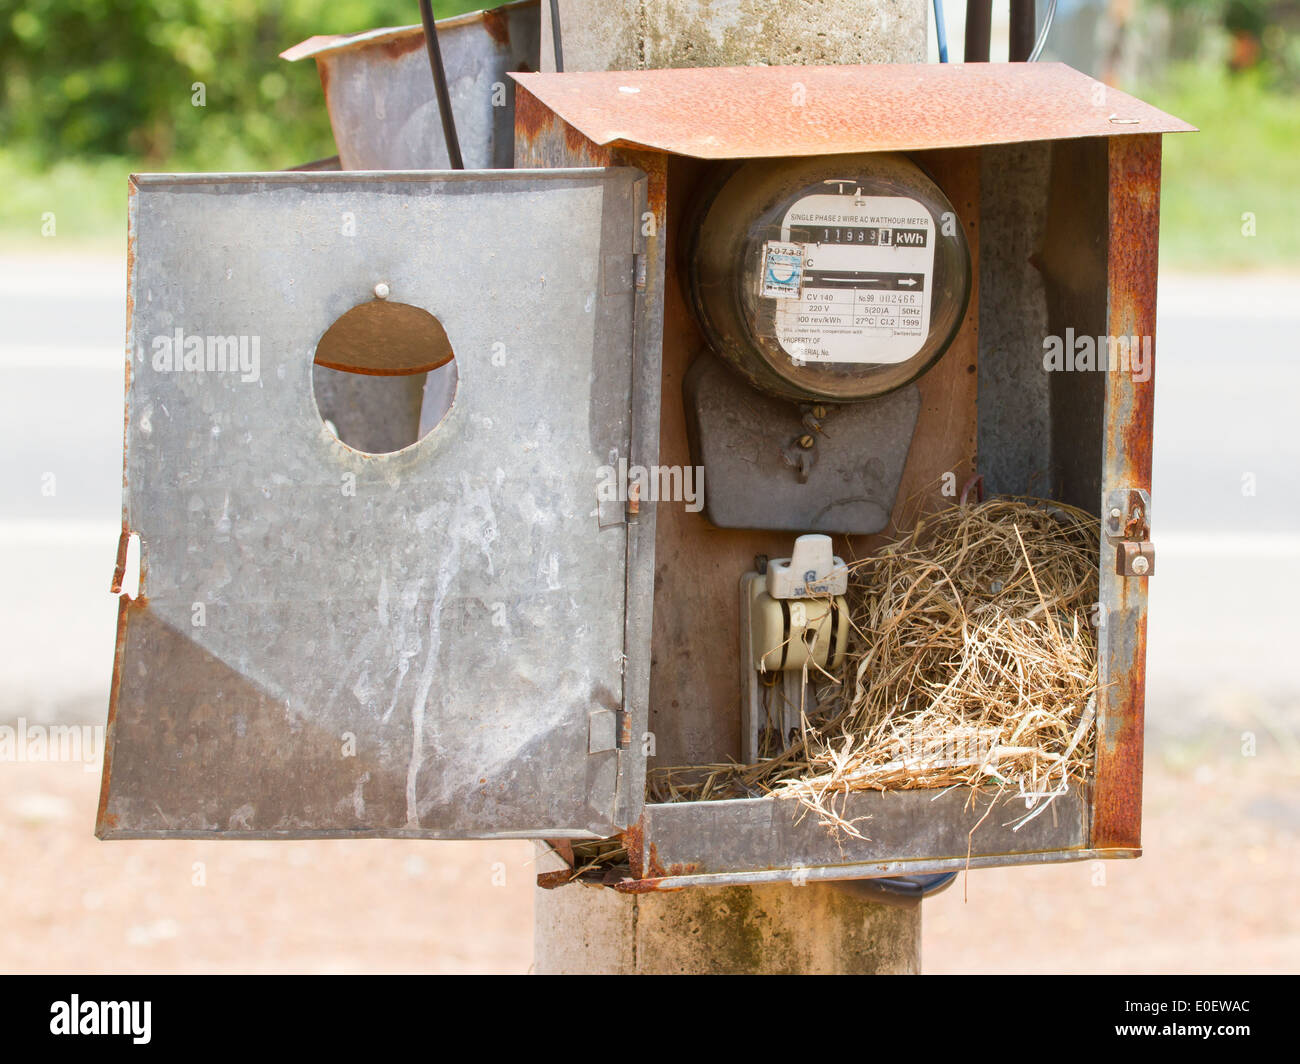 Nest of a sparrow in a cabinet with electrical meter (Vietnam) - Stock Image